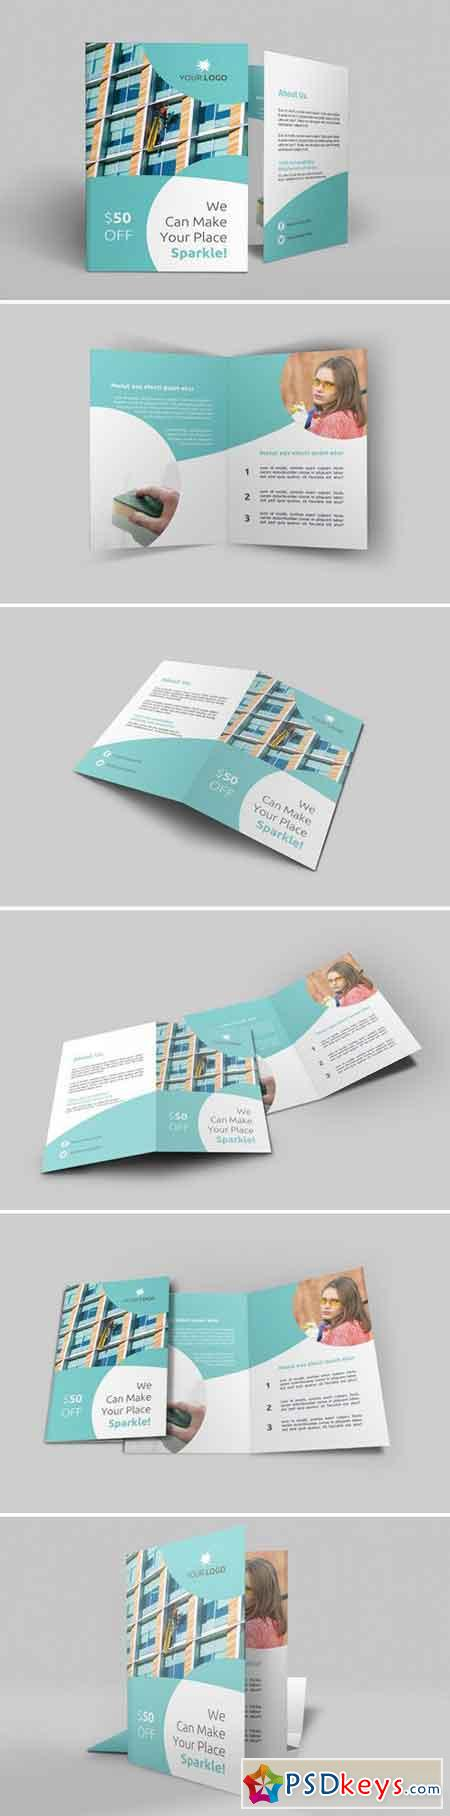 Cleaning Services Bi-Fold Brochure 1975372